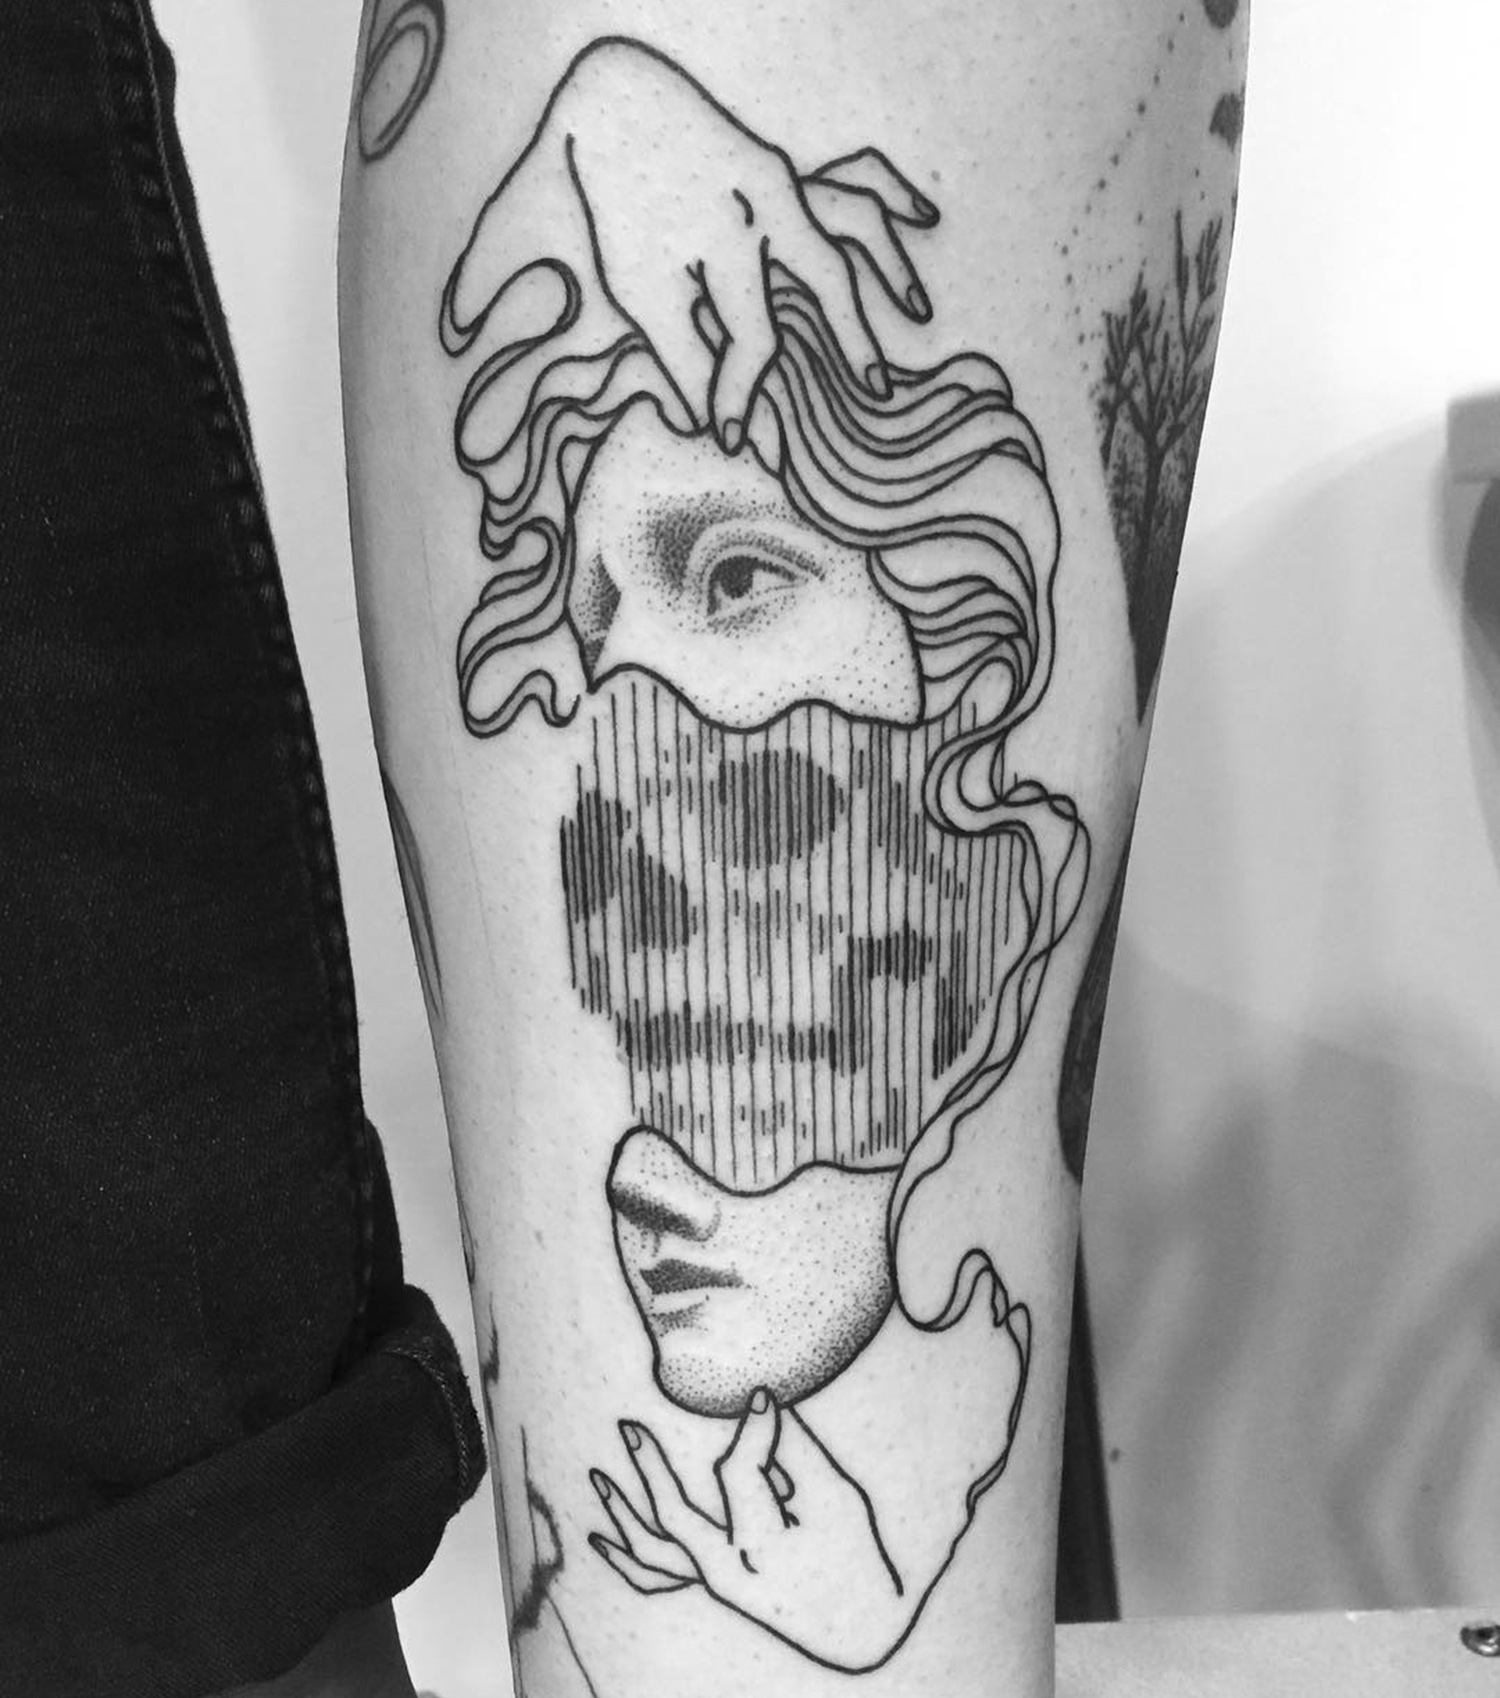 taking off the mask. blackwork tattoo by Francesco Rossetti